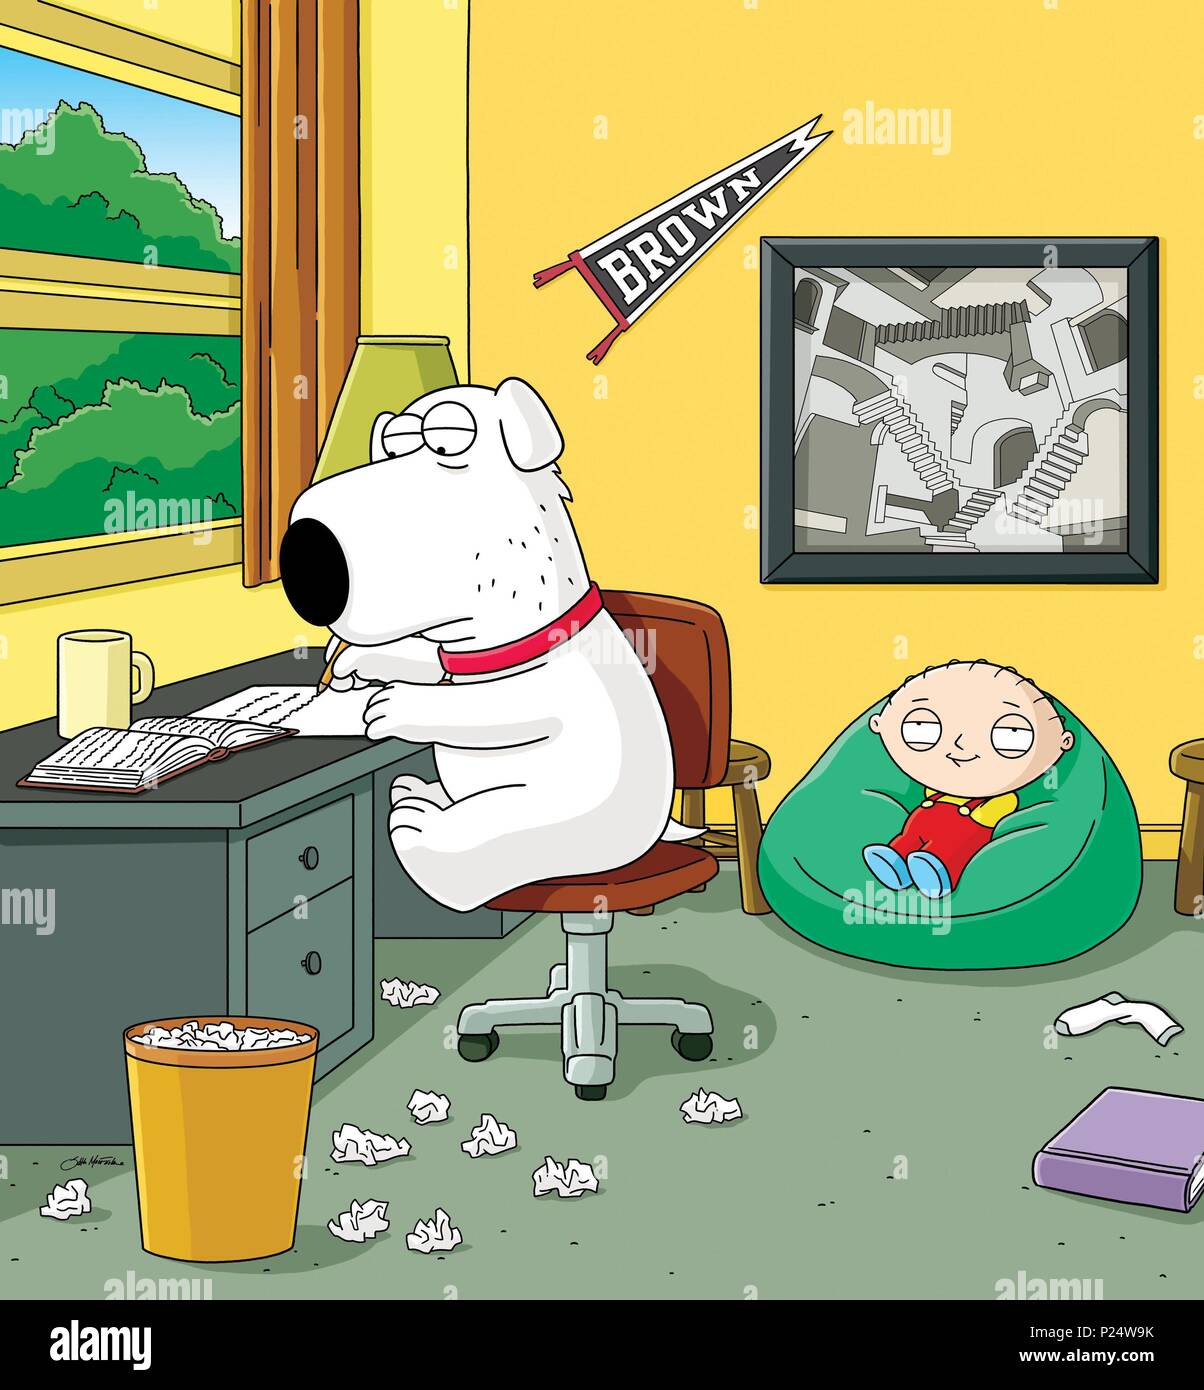 Family Guy High Resolution Stock Photography And Images Alamy